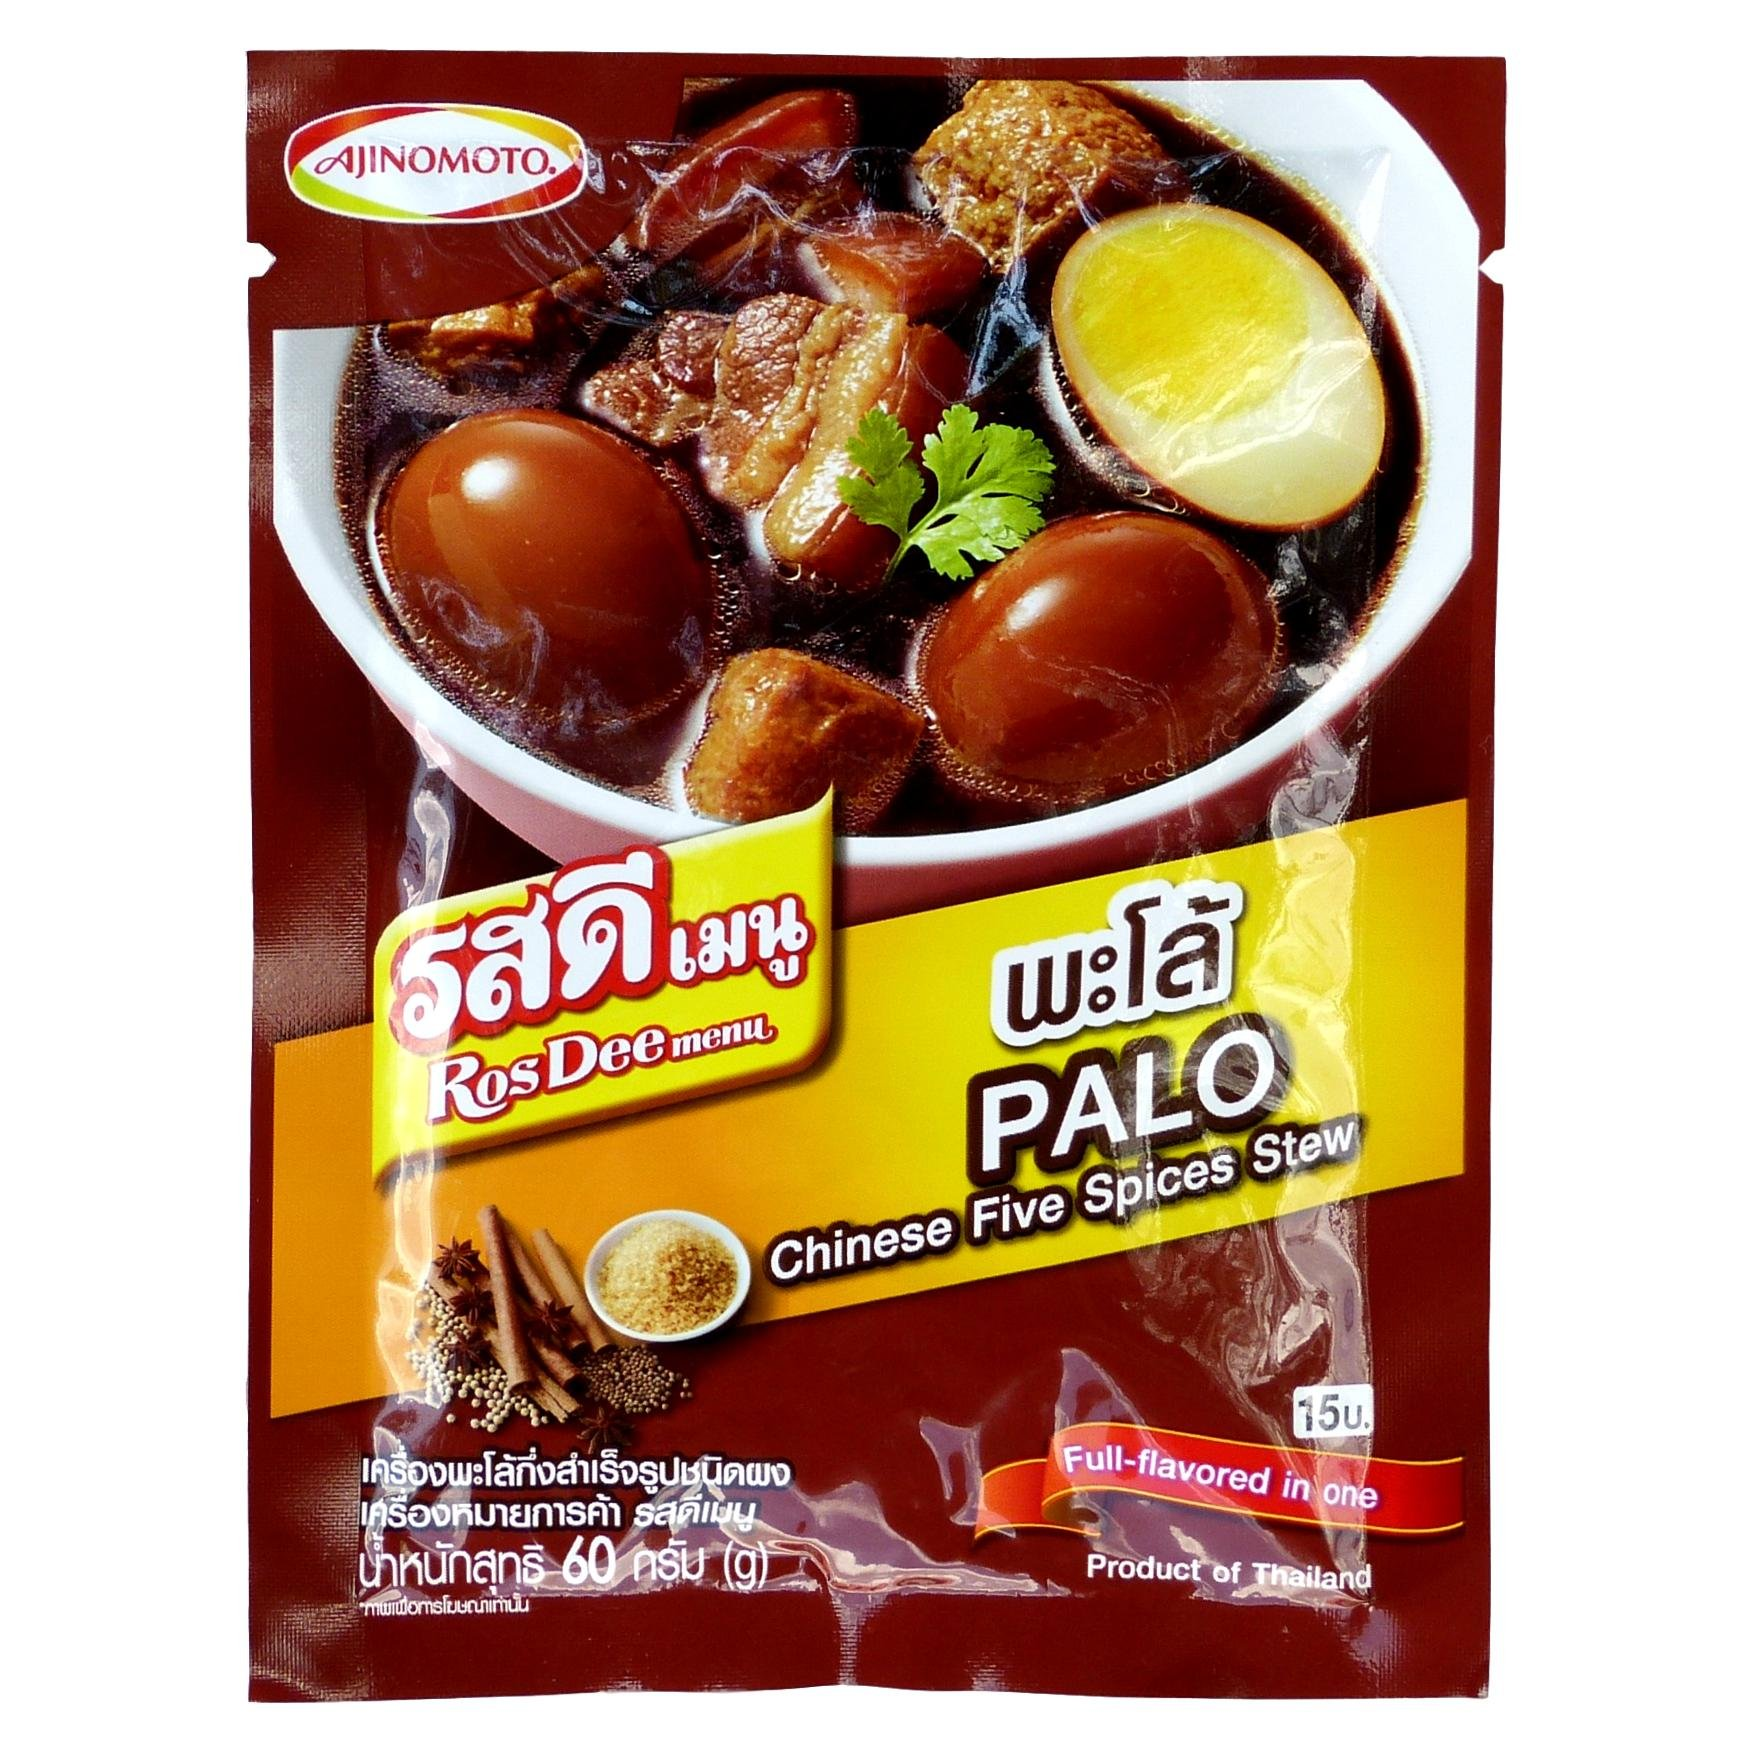 Chinese Five Spices Blend Powder (Pae-lo Powder) Net Wt 60g (2.12 Oz) Herbal Food X 4 Bags by Rosdee Menu (Image #1)